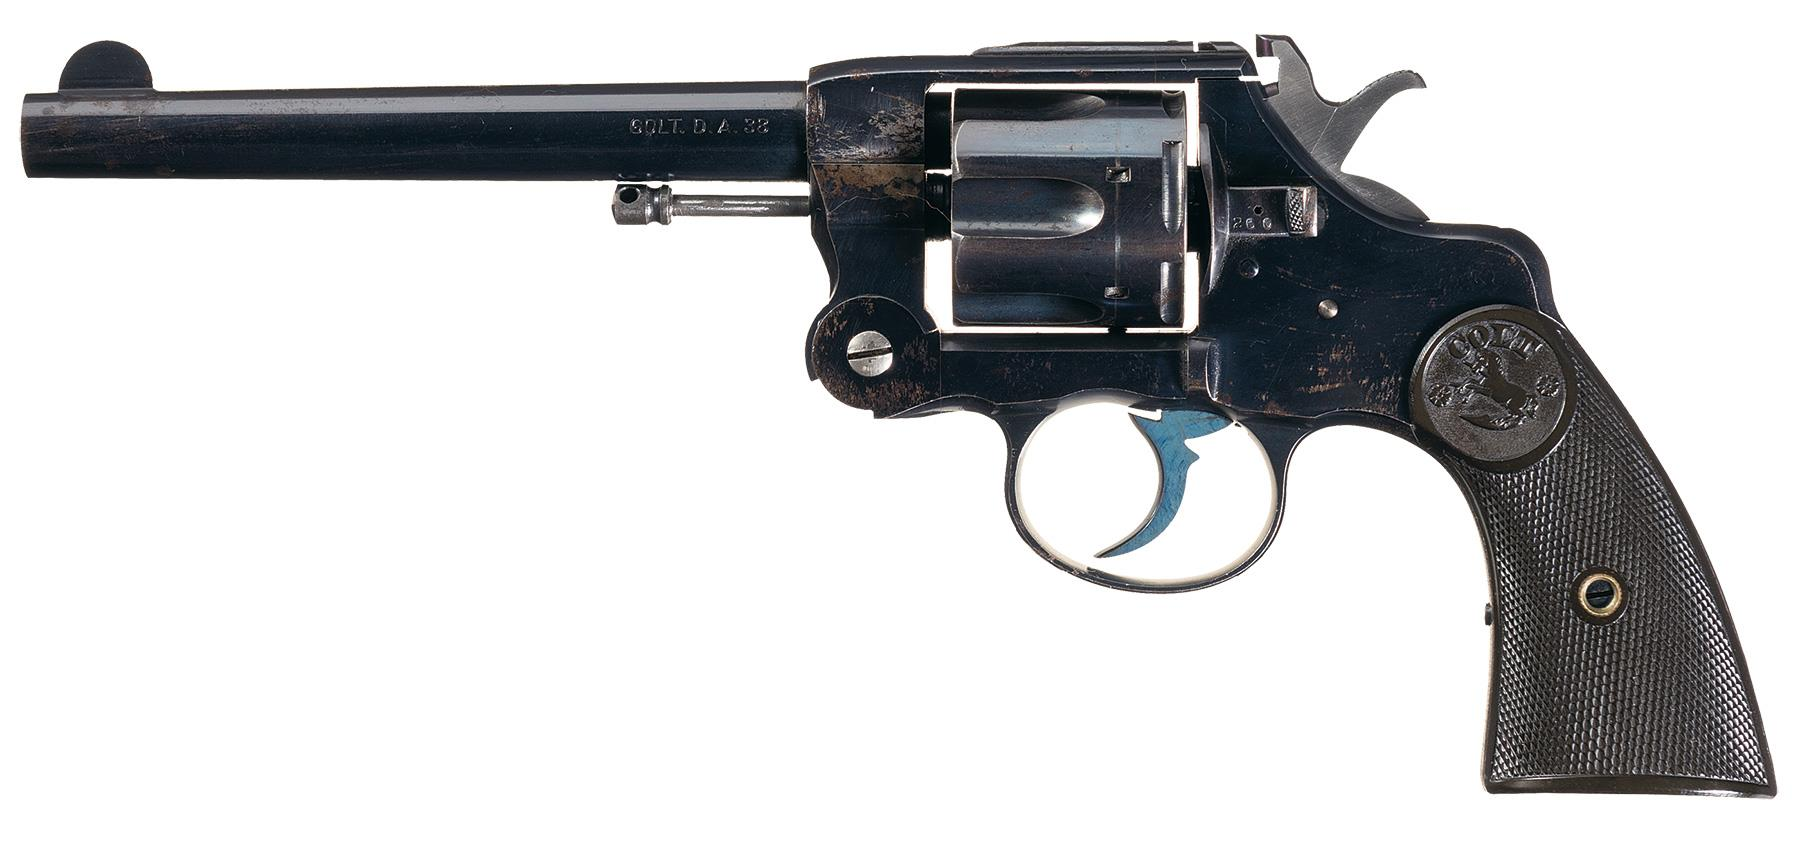 This sole example of a top break Colt Army and Navy revolver is opened by the latch on the left side of the frame behind the cylinder.